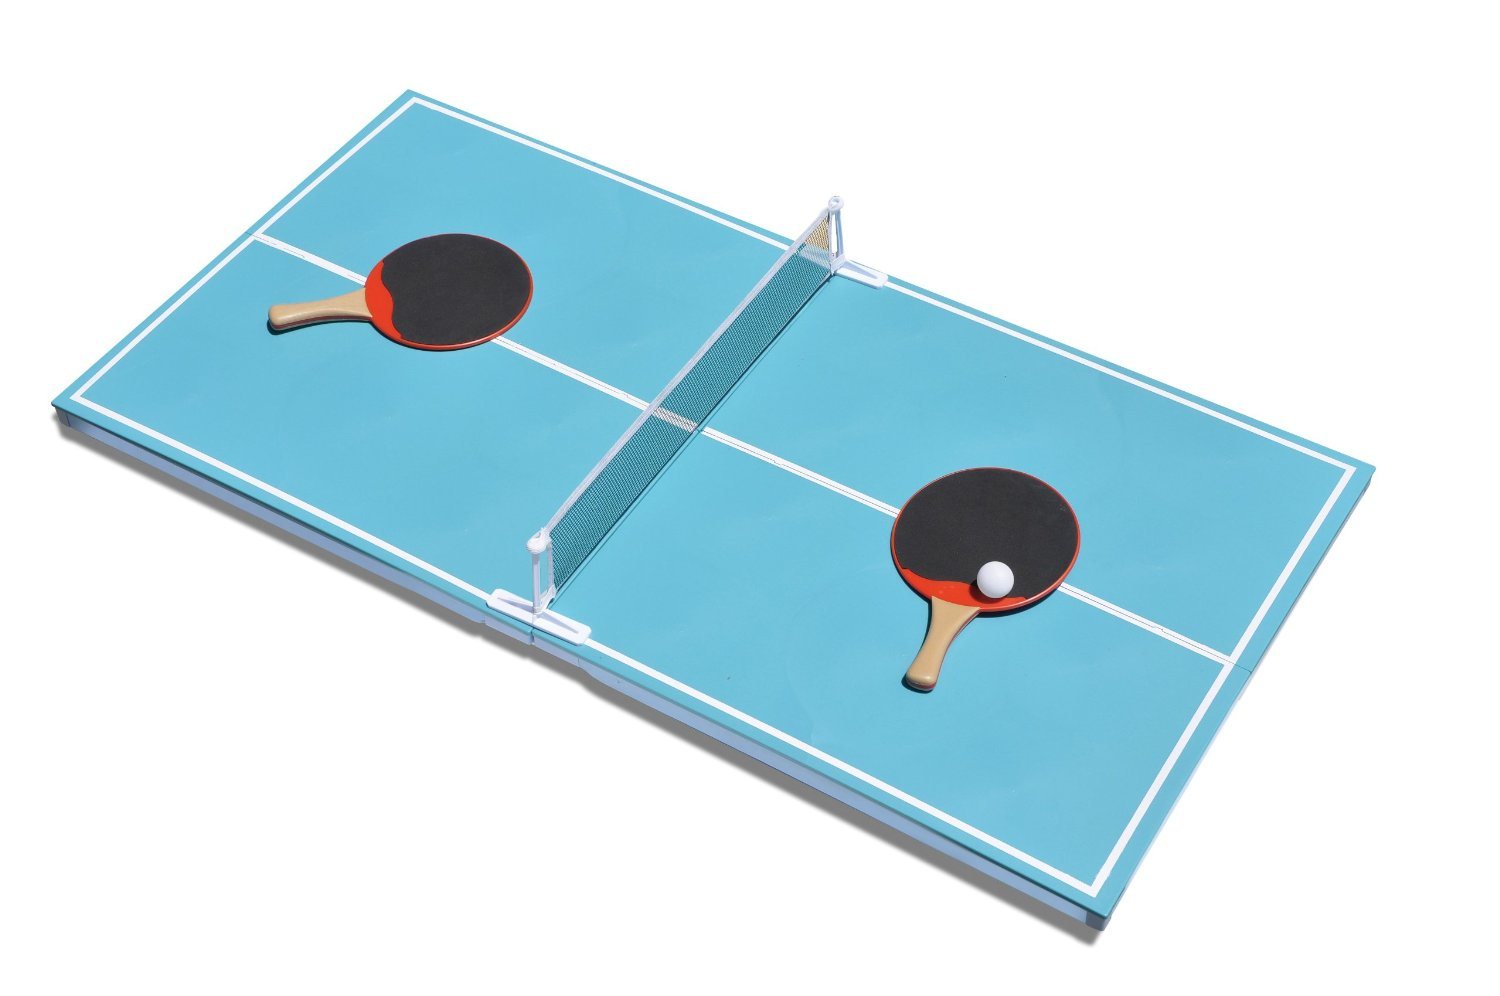 Solde Table De Ping Pong Table De Ping Pong Flottante 75 22 Des Parties De